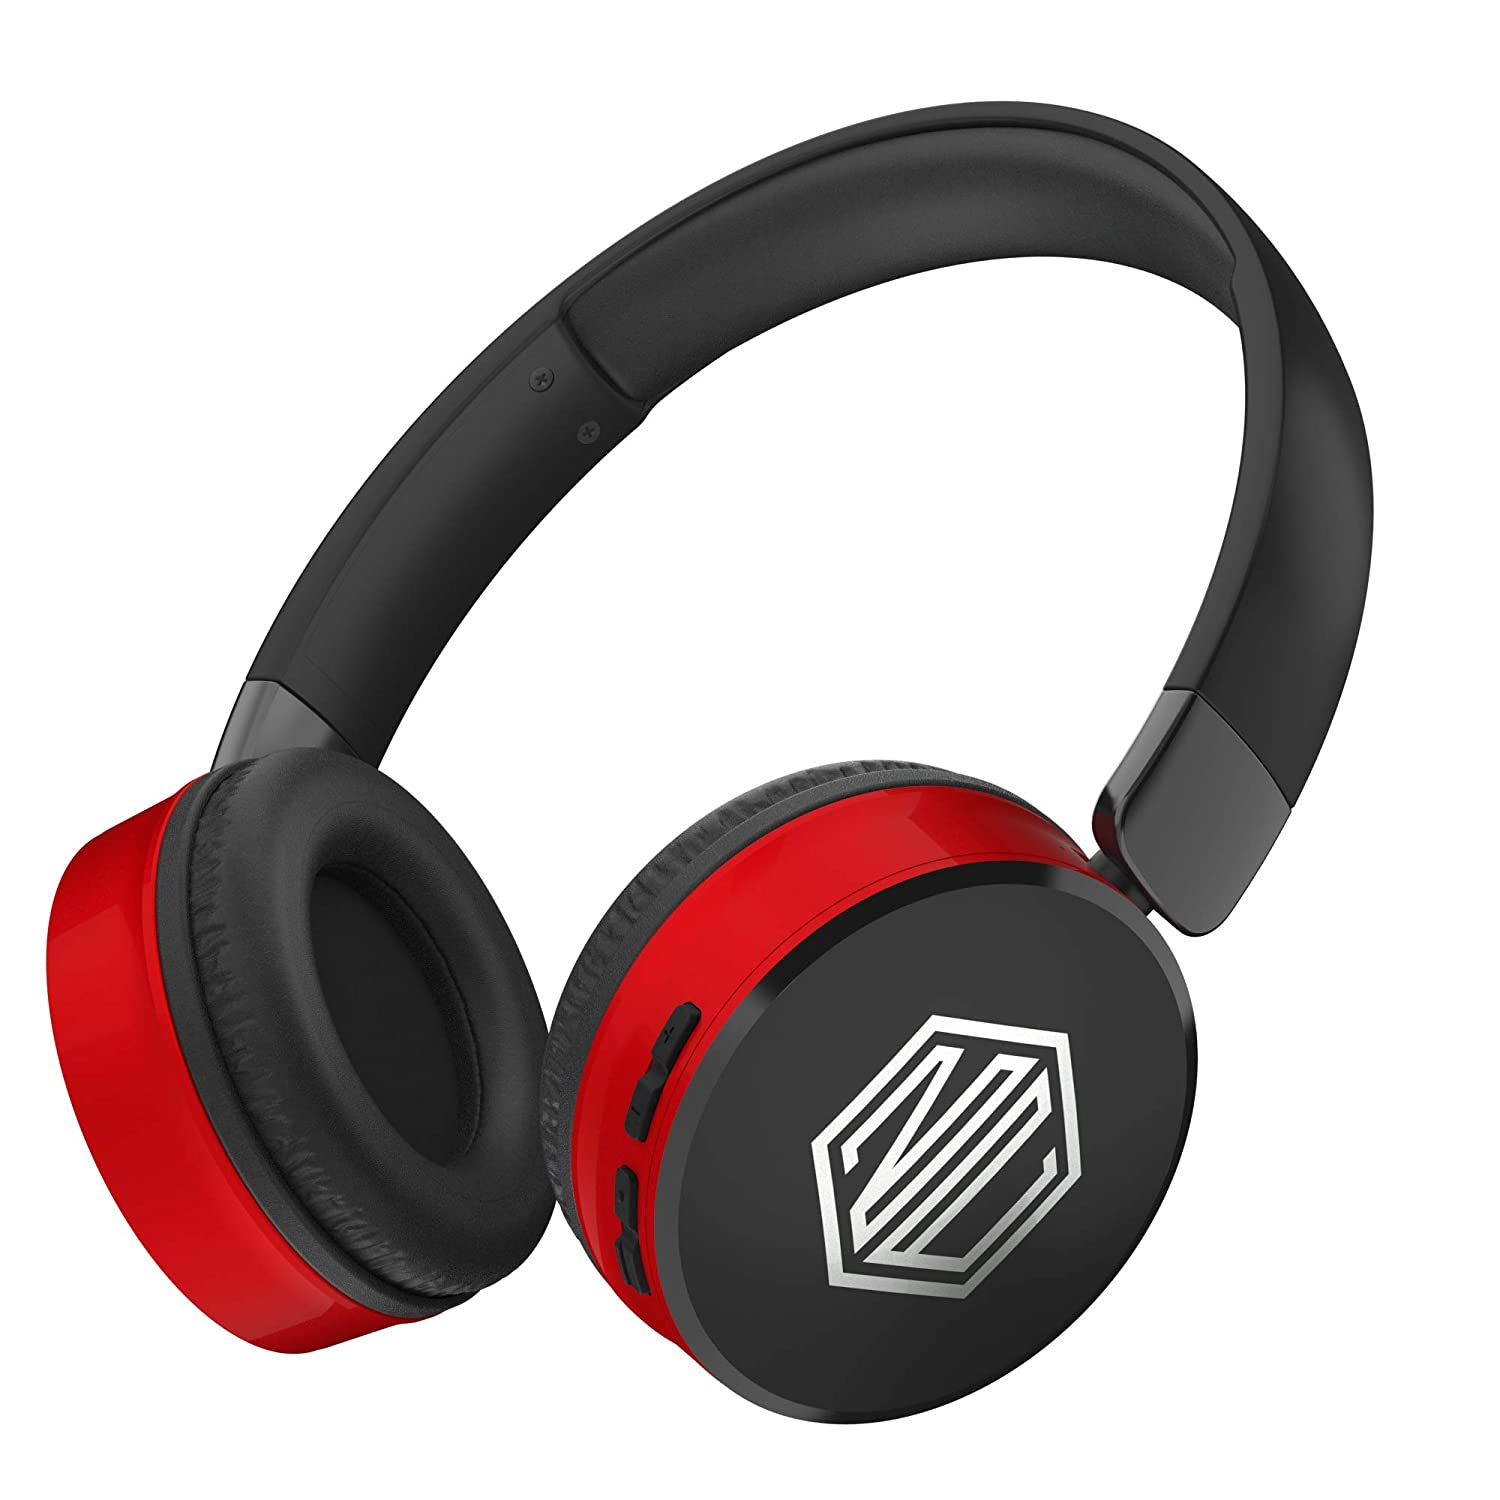 Nu Republic Dubstep Wireless Headphones with Mic (Red and Black)